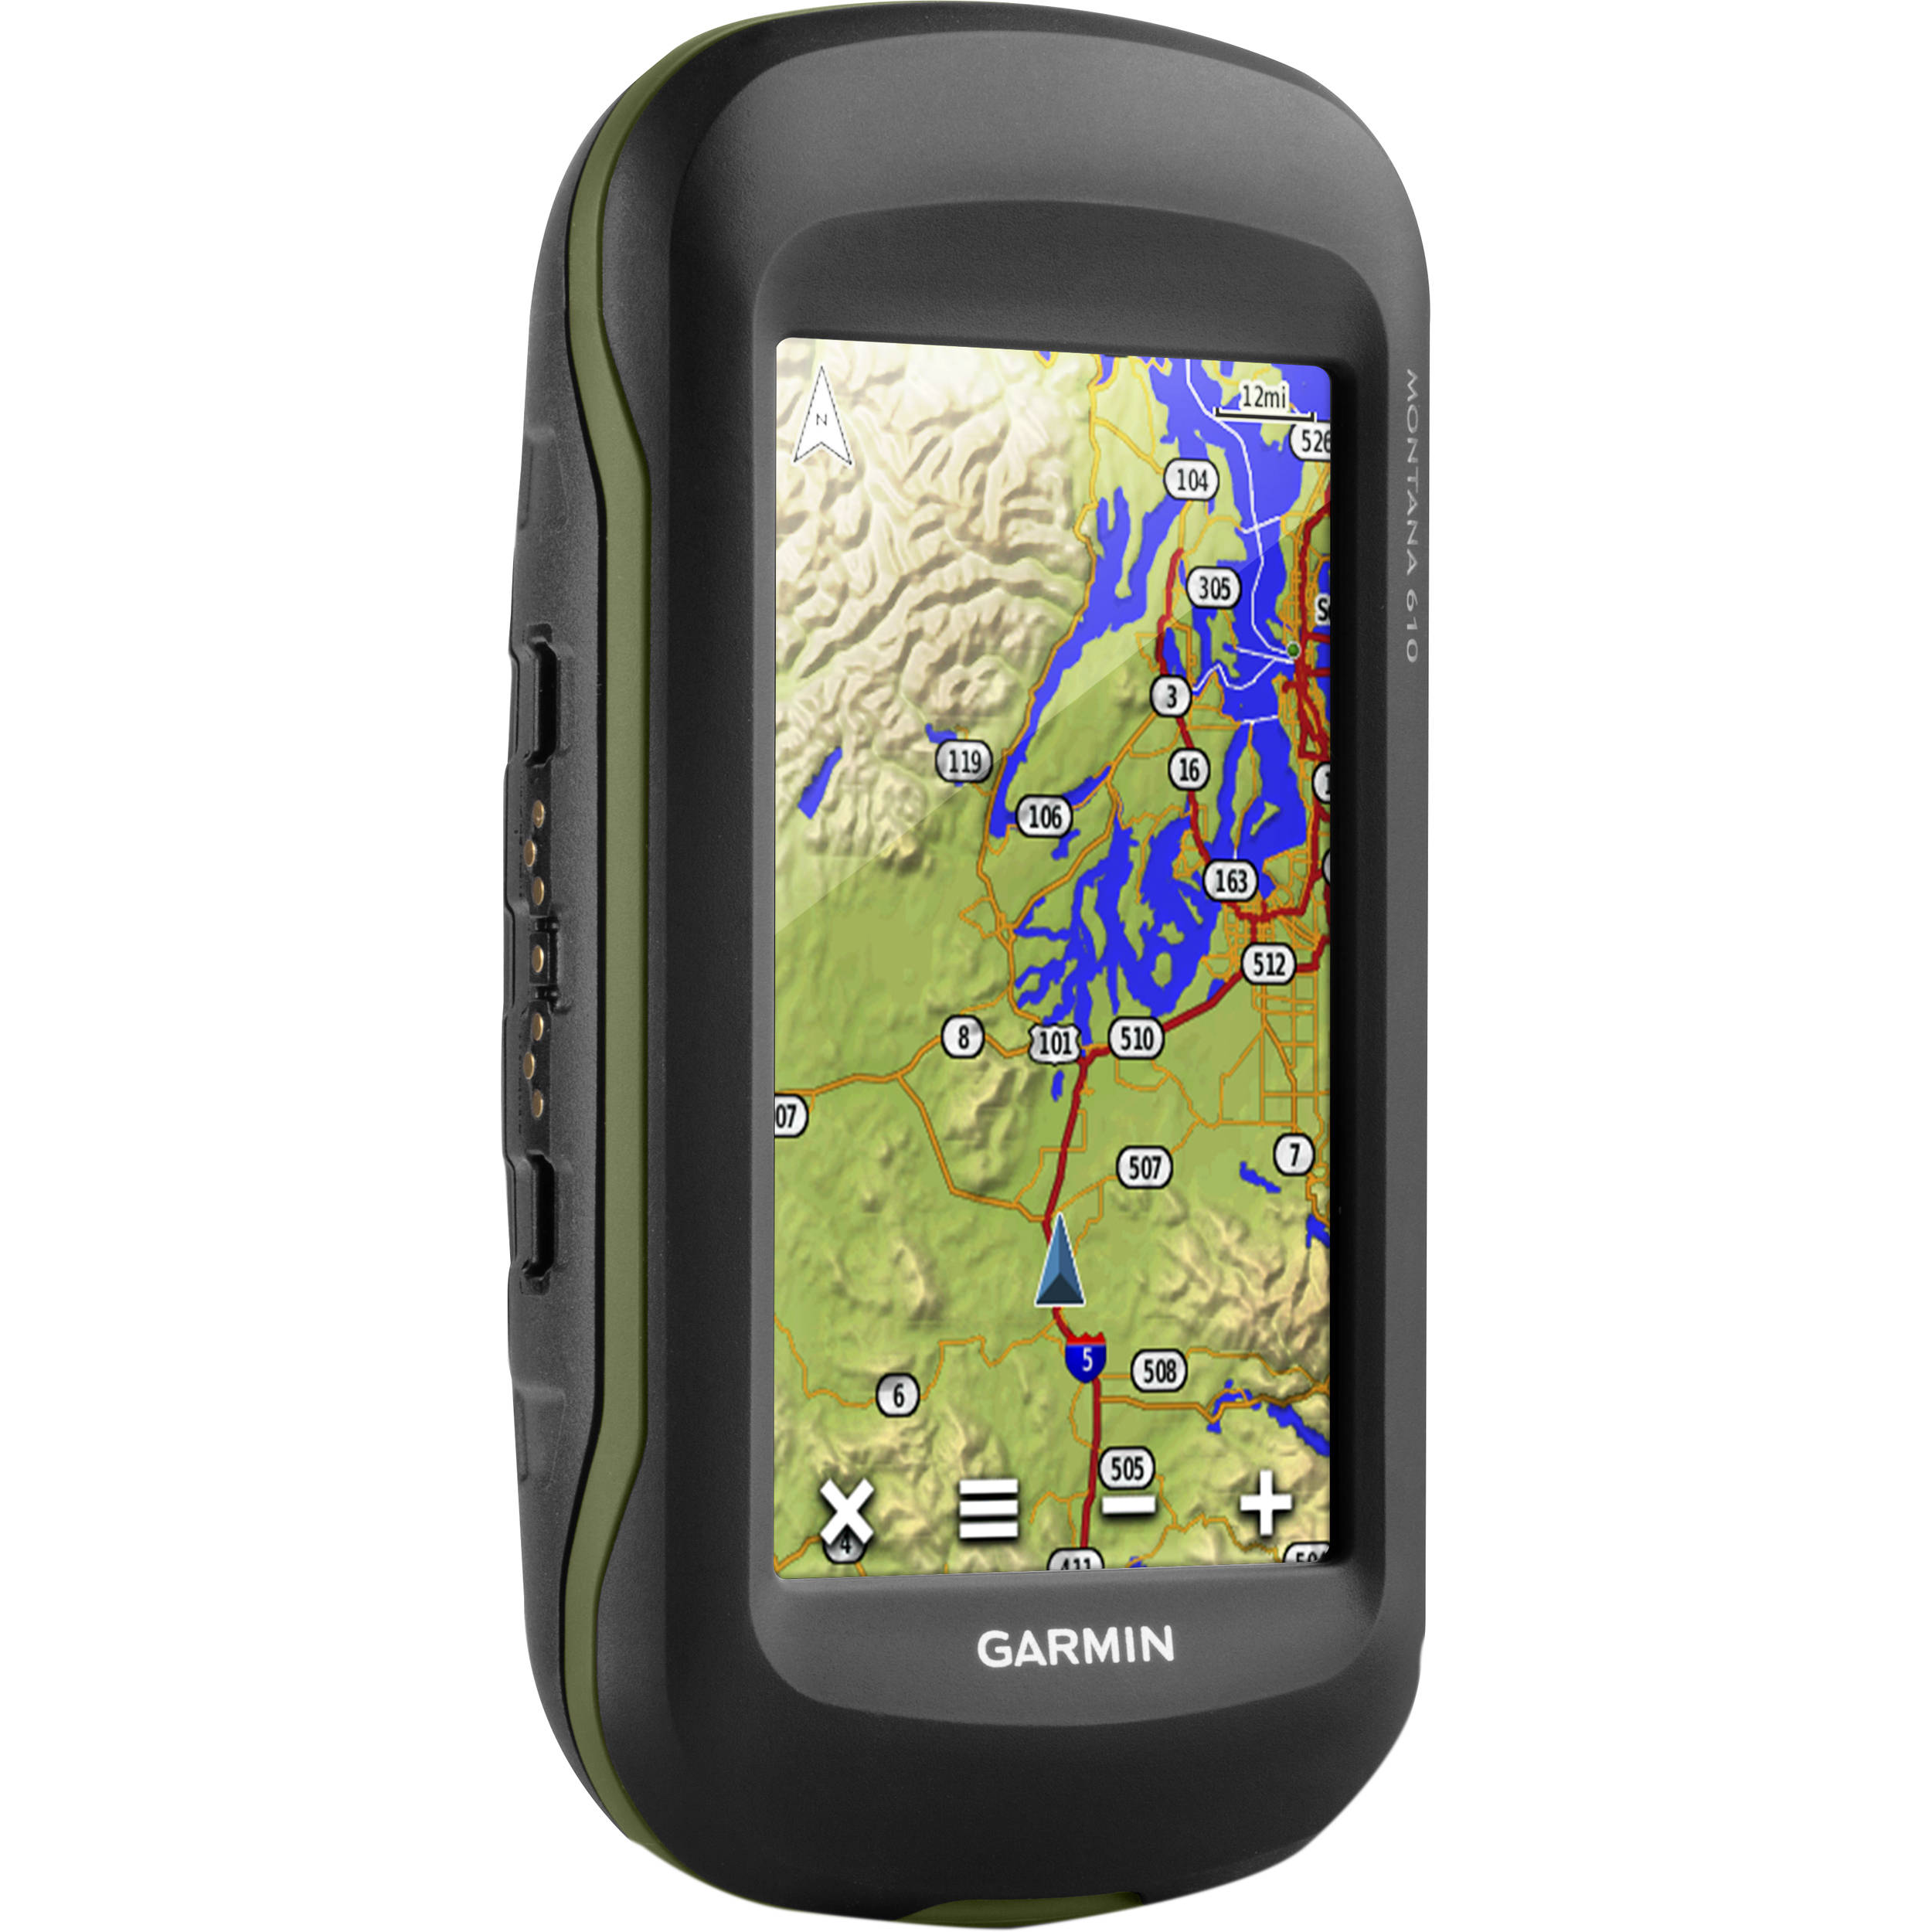 garmin montana 610 handheld gps 010 01534 00 b h photo video garmin 610 manual svenska garmin 680 manual